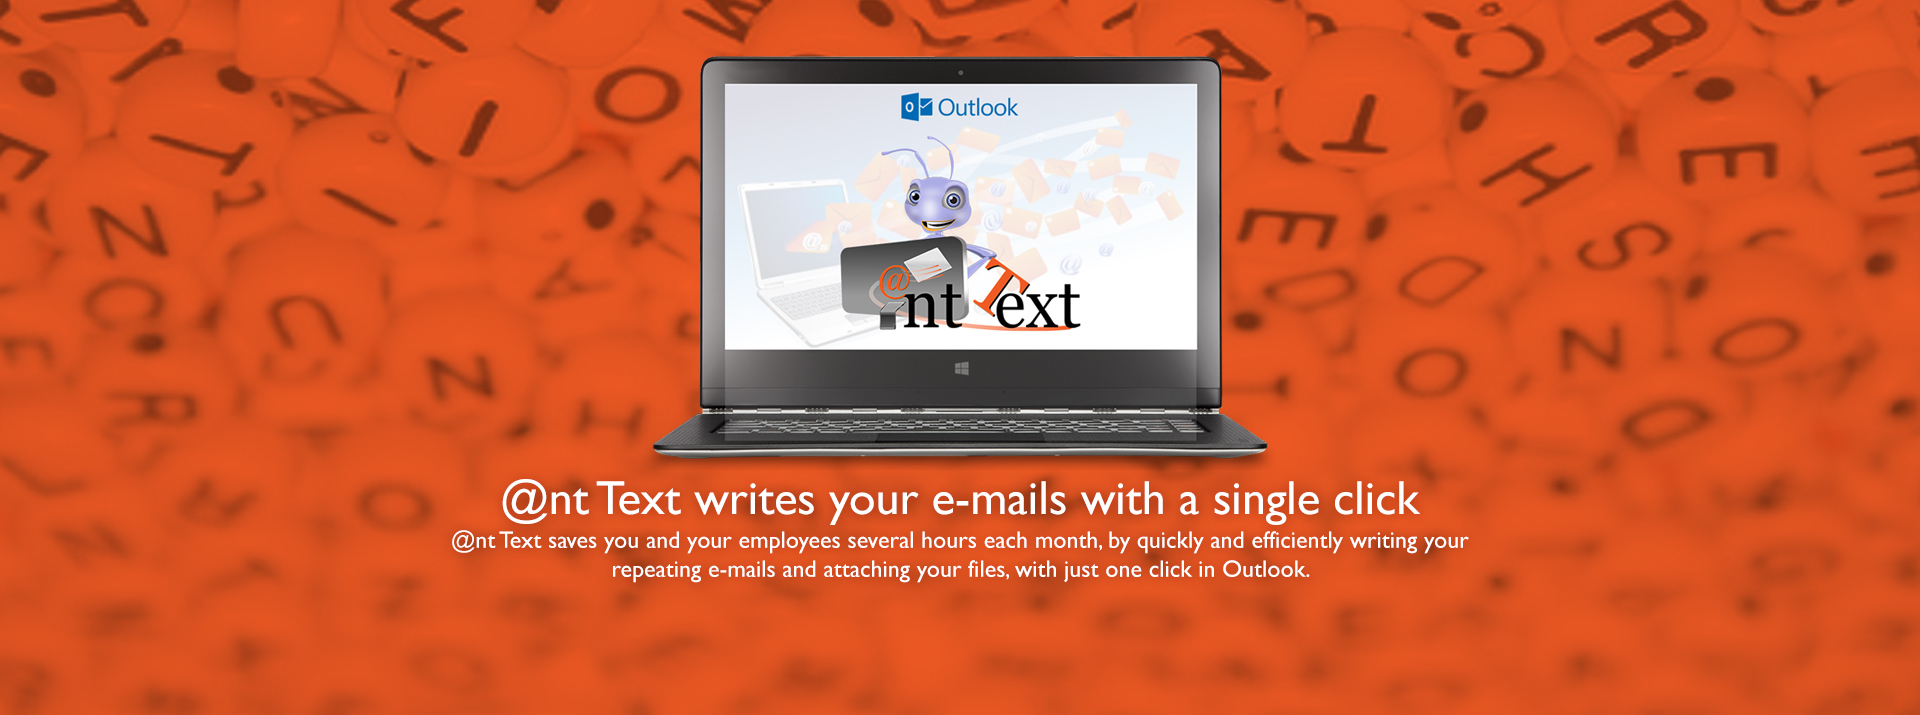 Header Computer screen with Outlook and Ant Text logos - Ant Text writes your emails with a single click